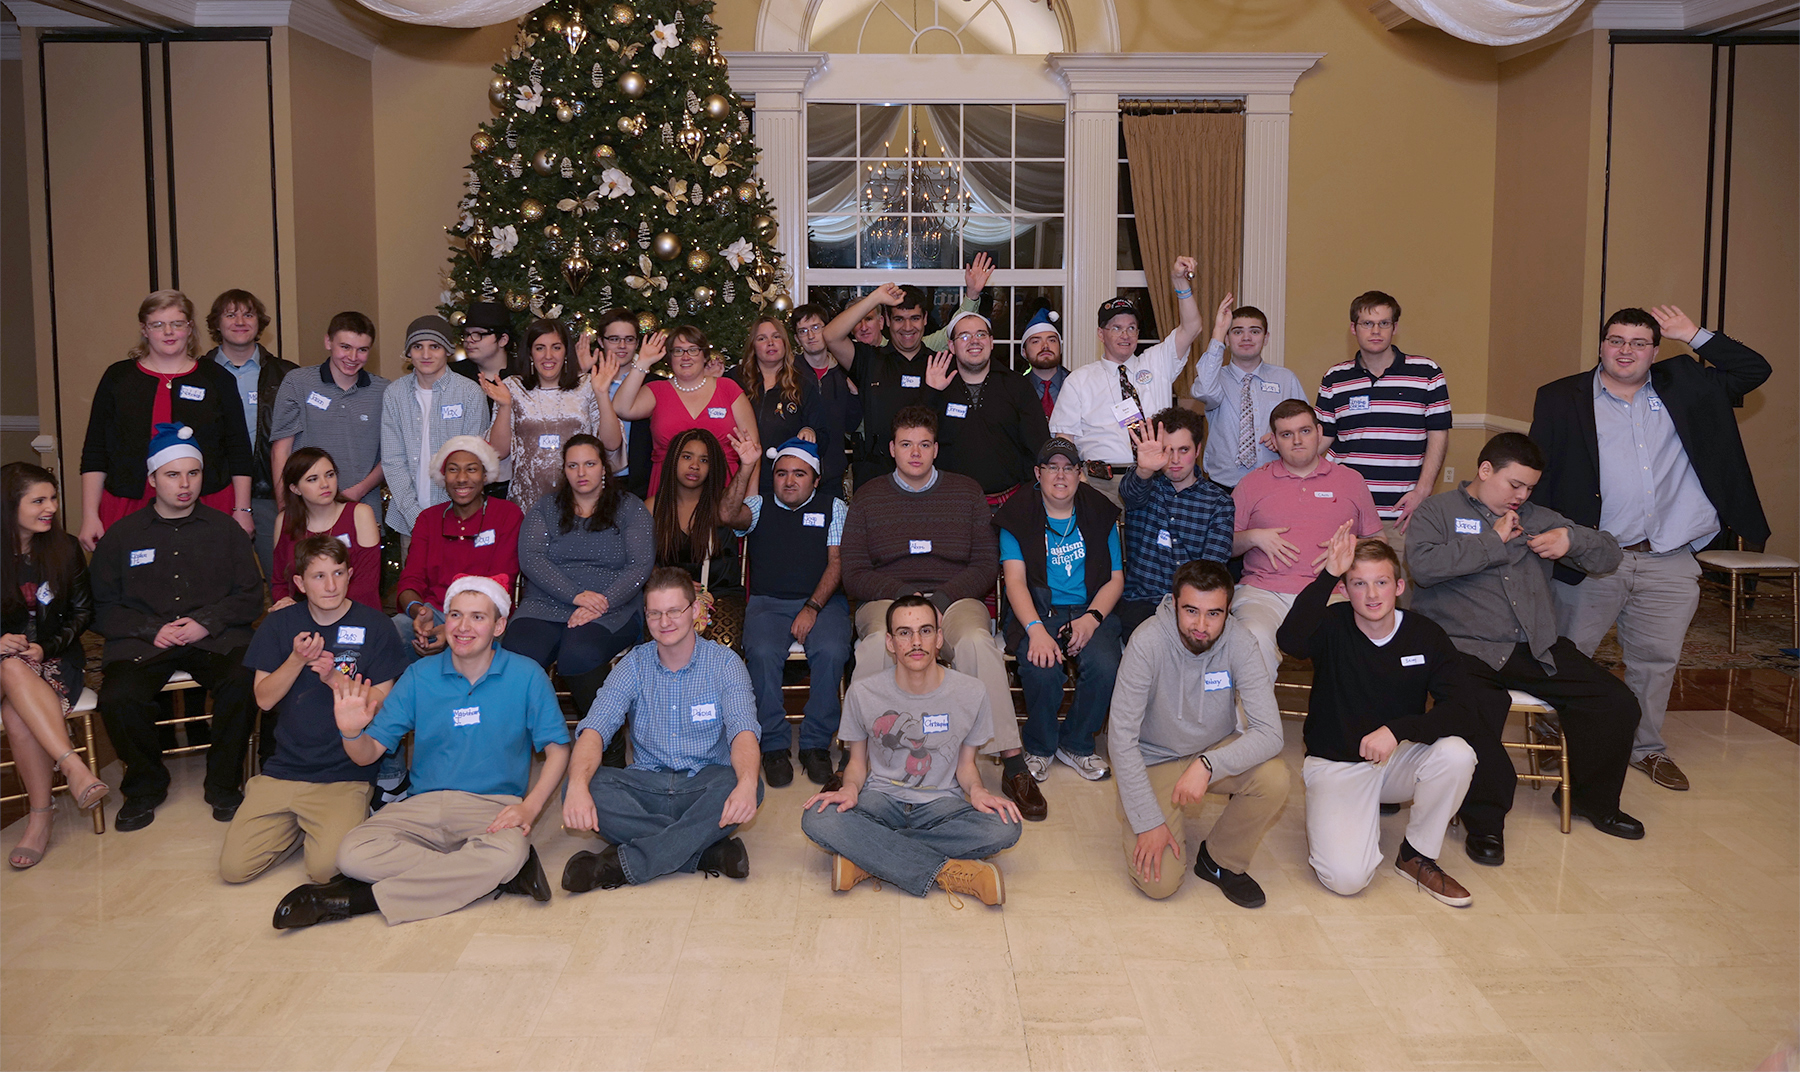 Our Annual Holiday Party